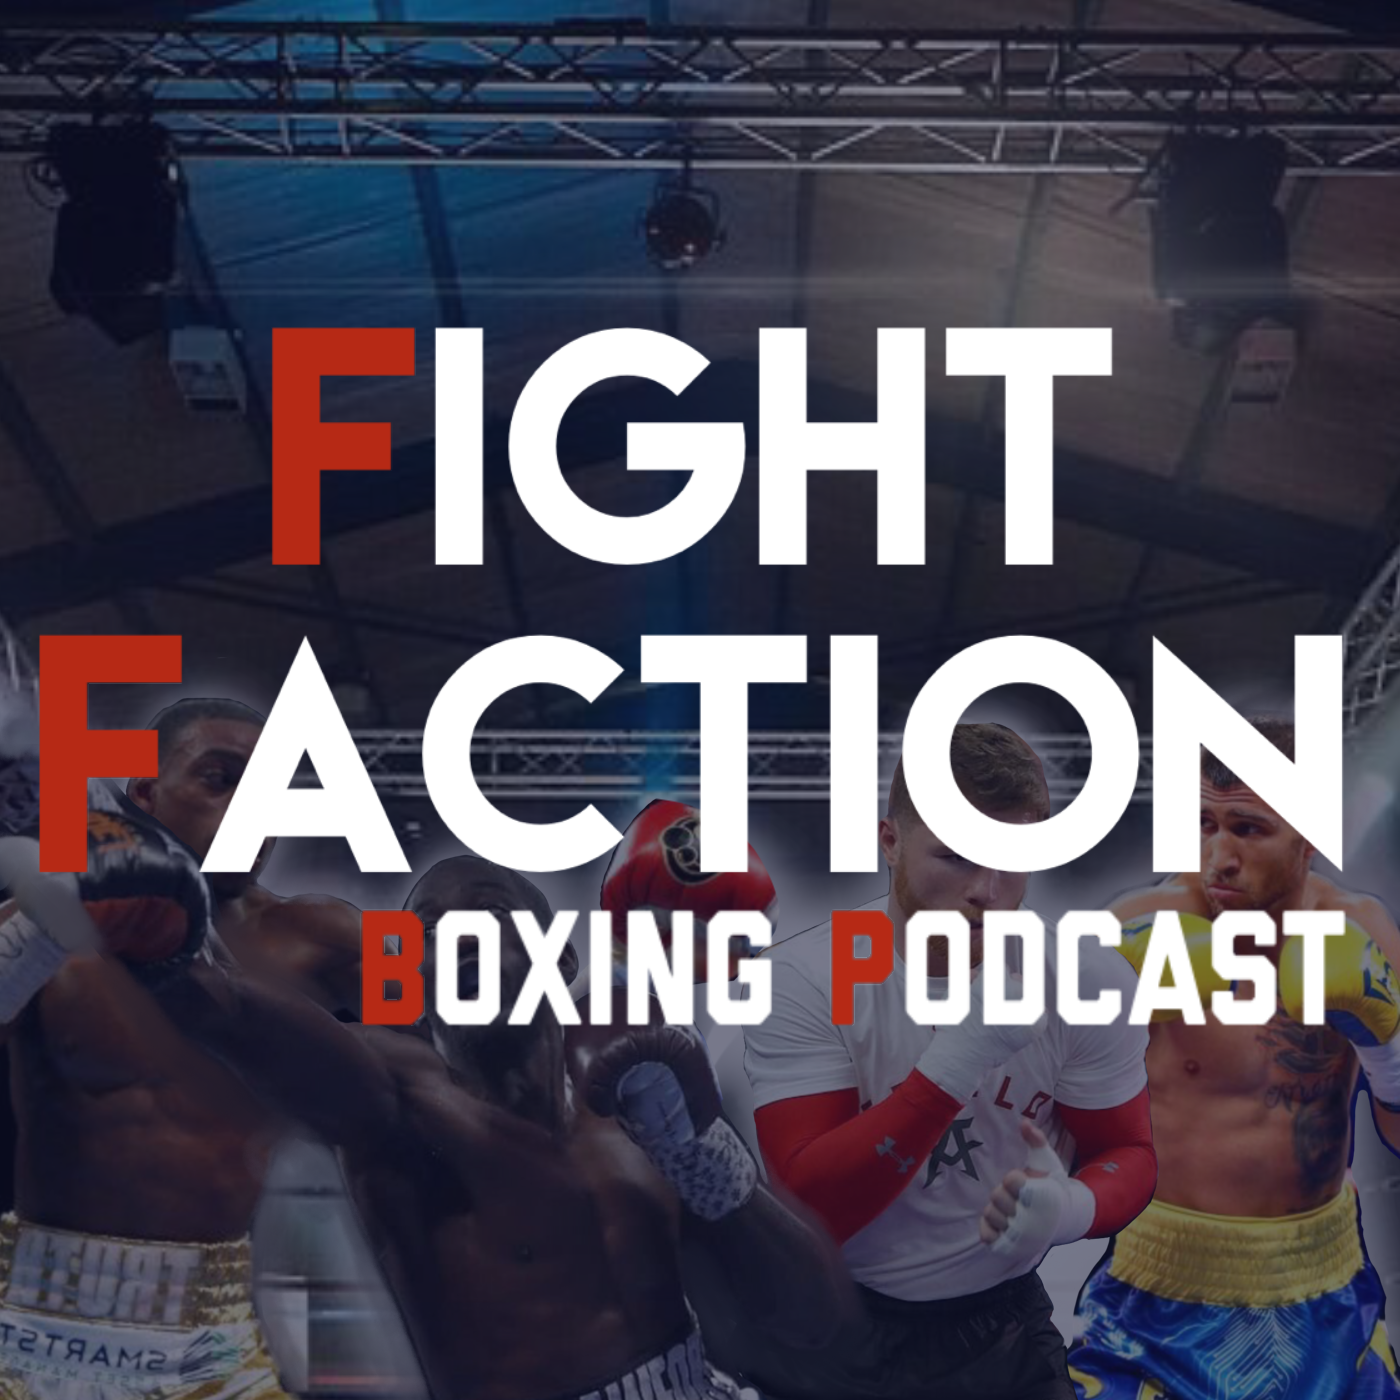 The Fight Faction Boxing Podcast